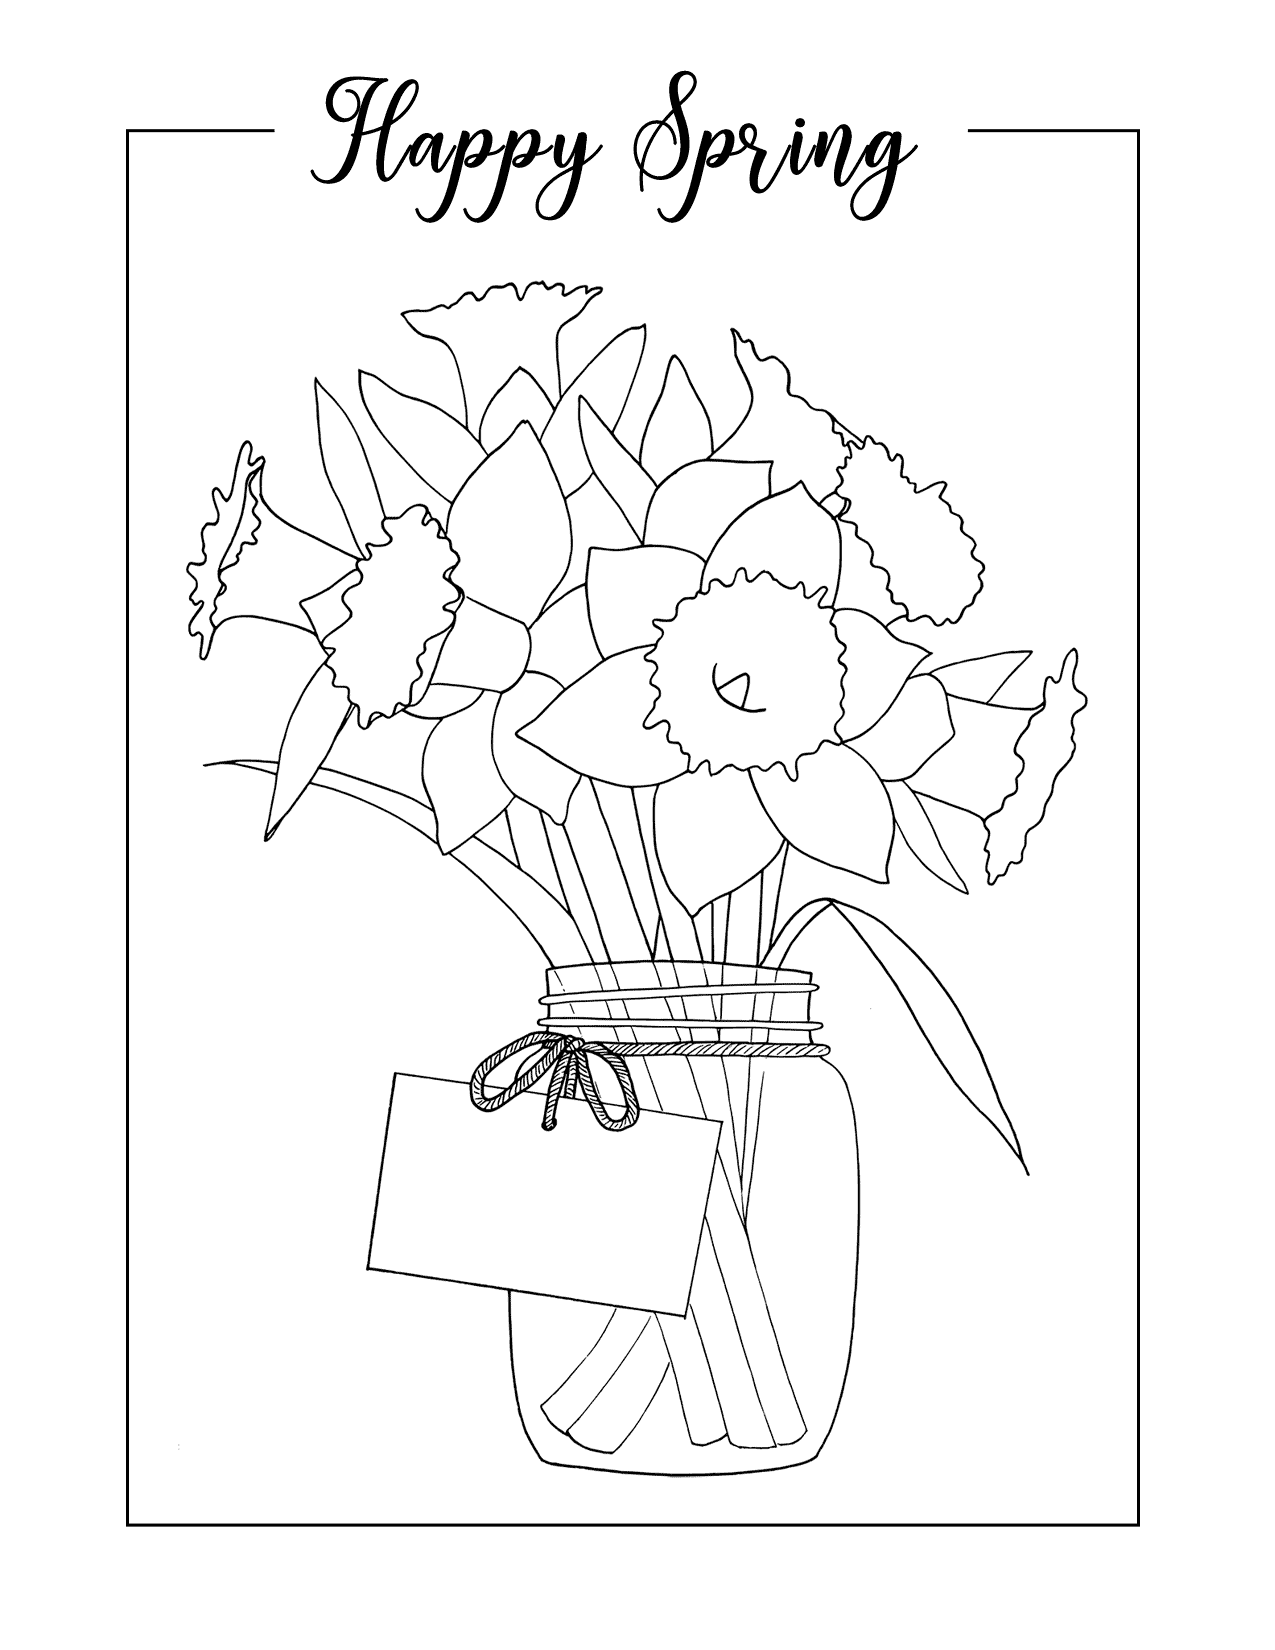 Happy Spring Daffodils Coloring Page